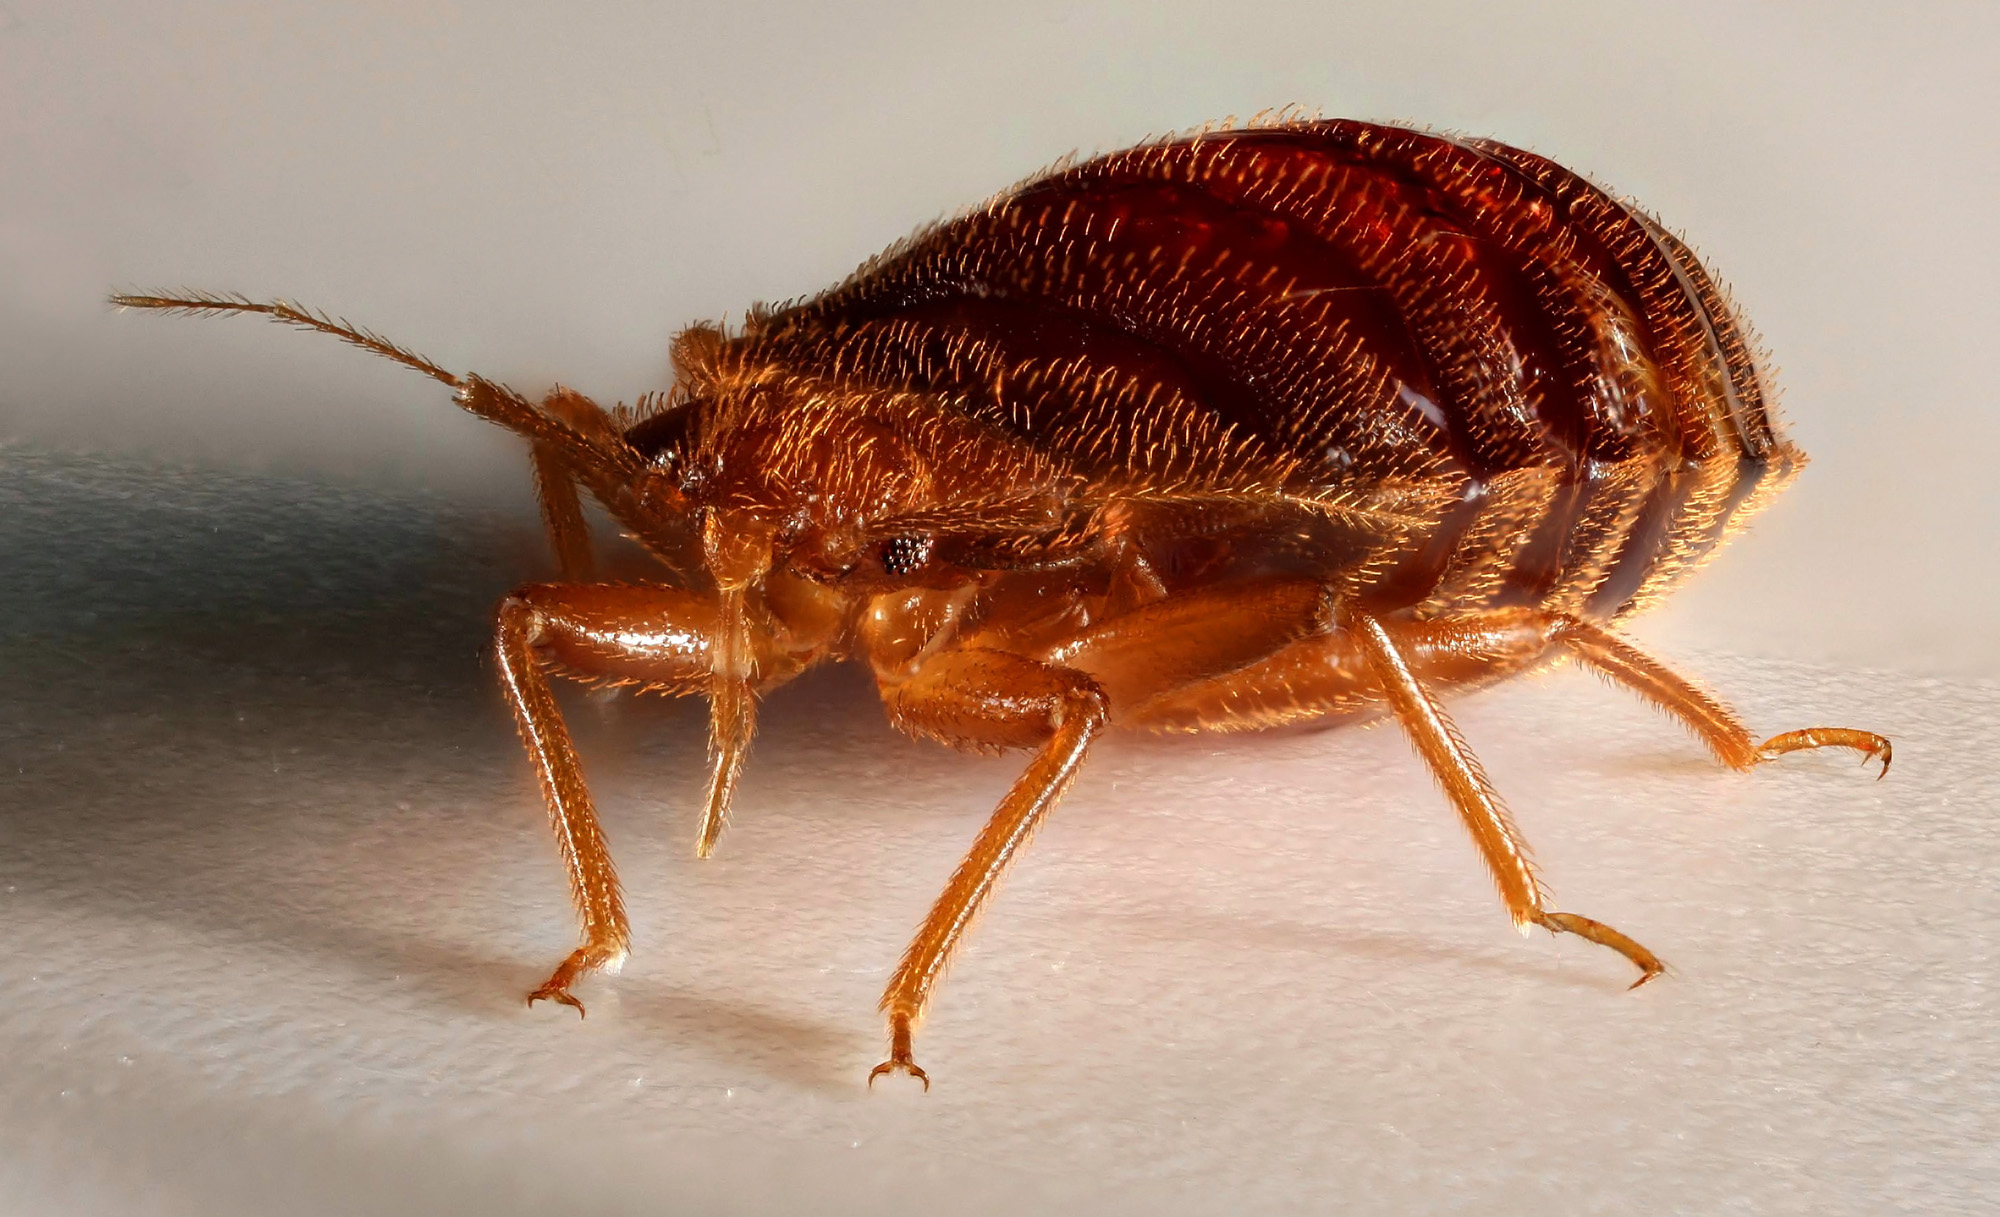 pictures of bed bugs - 1000×609